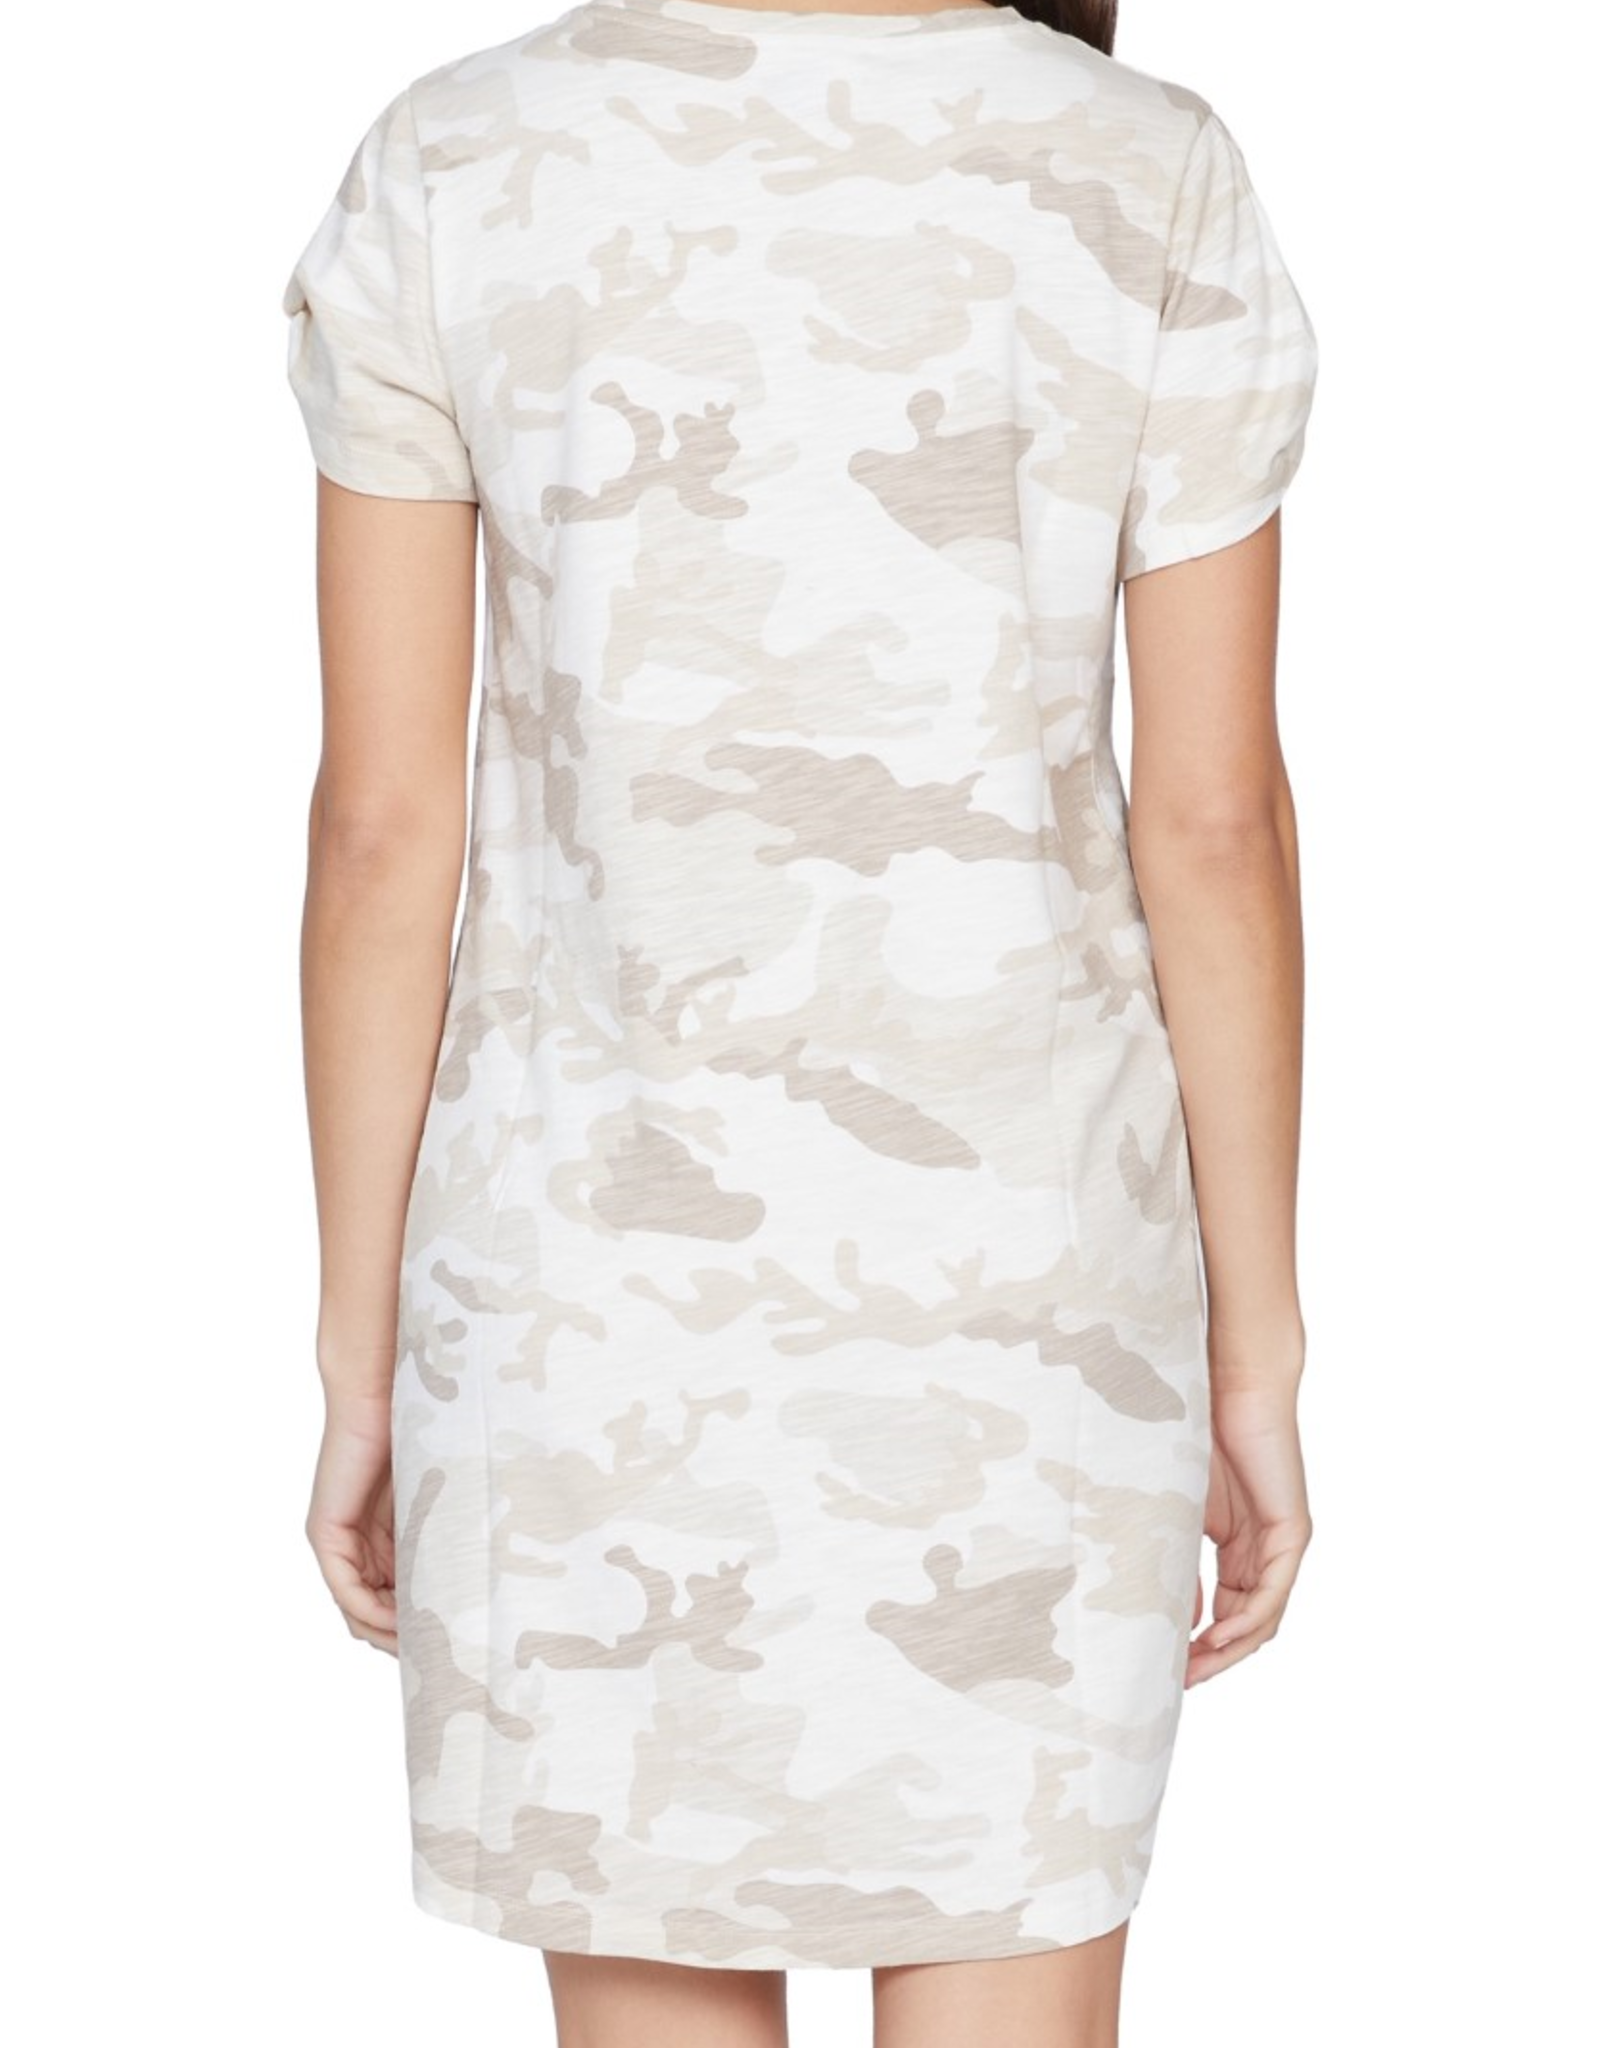 Twisted T-Shirt Dress